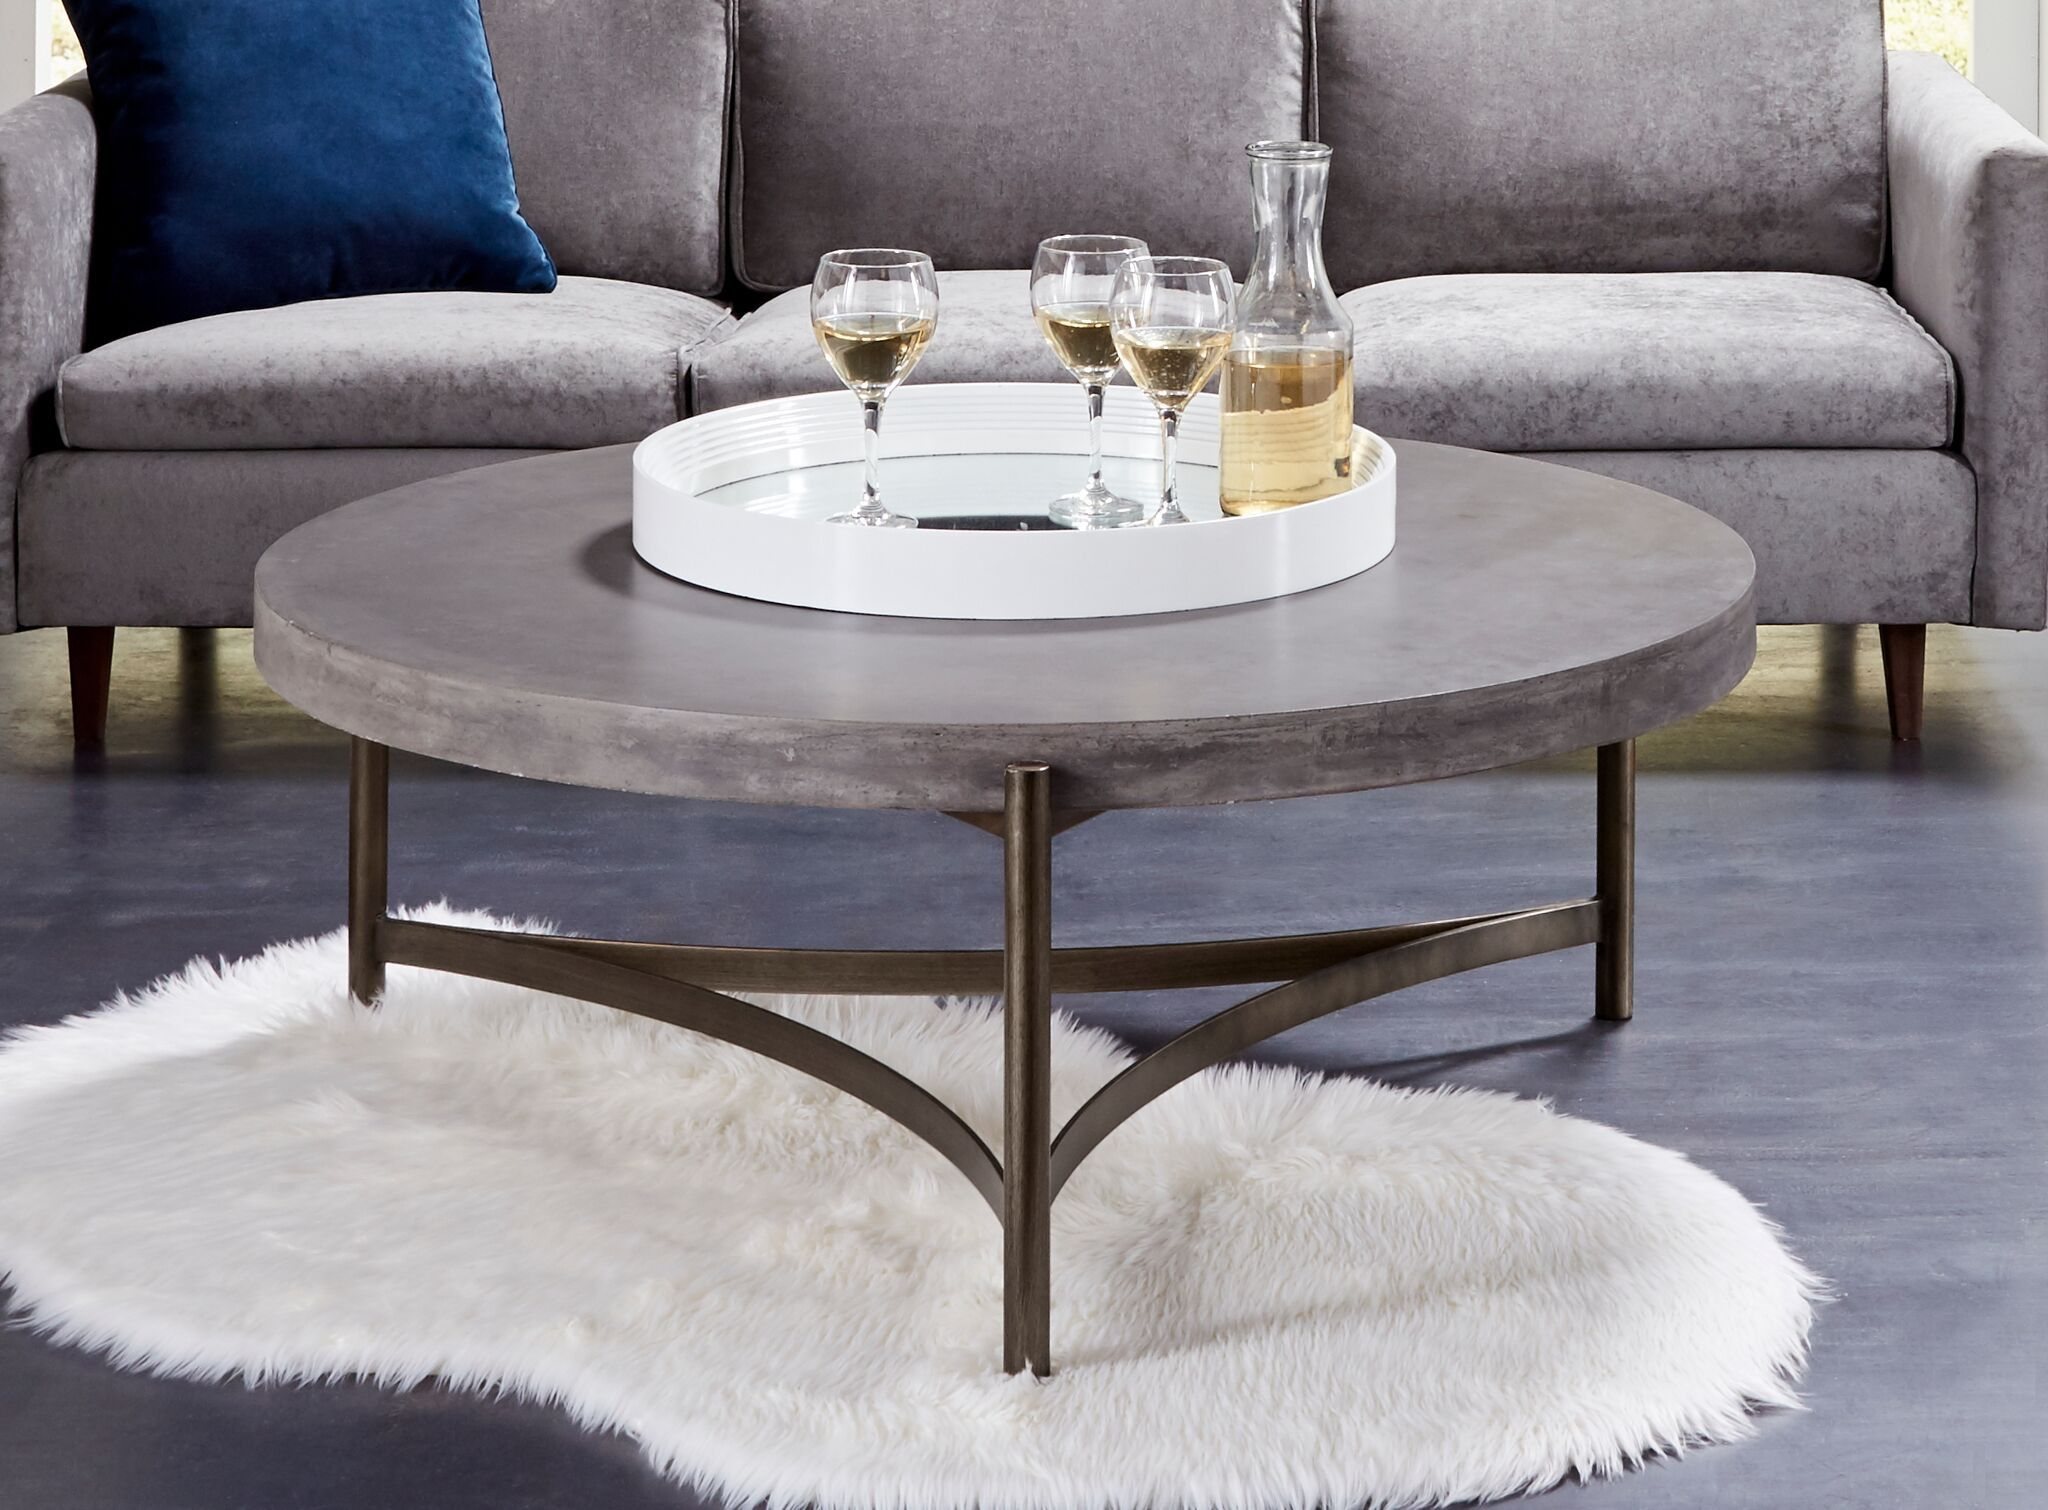 Looking For A Penthouse View Without The Penthouse Price If You Ve Got Expensive Taste You Re Going To Concrete Coffee Table Coffee Table Round Coffee Table [ 1510 x 2048 Pixel ]